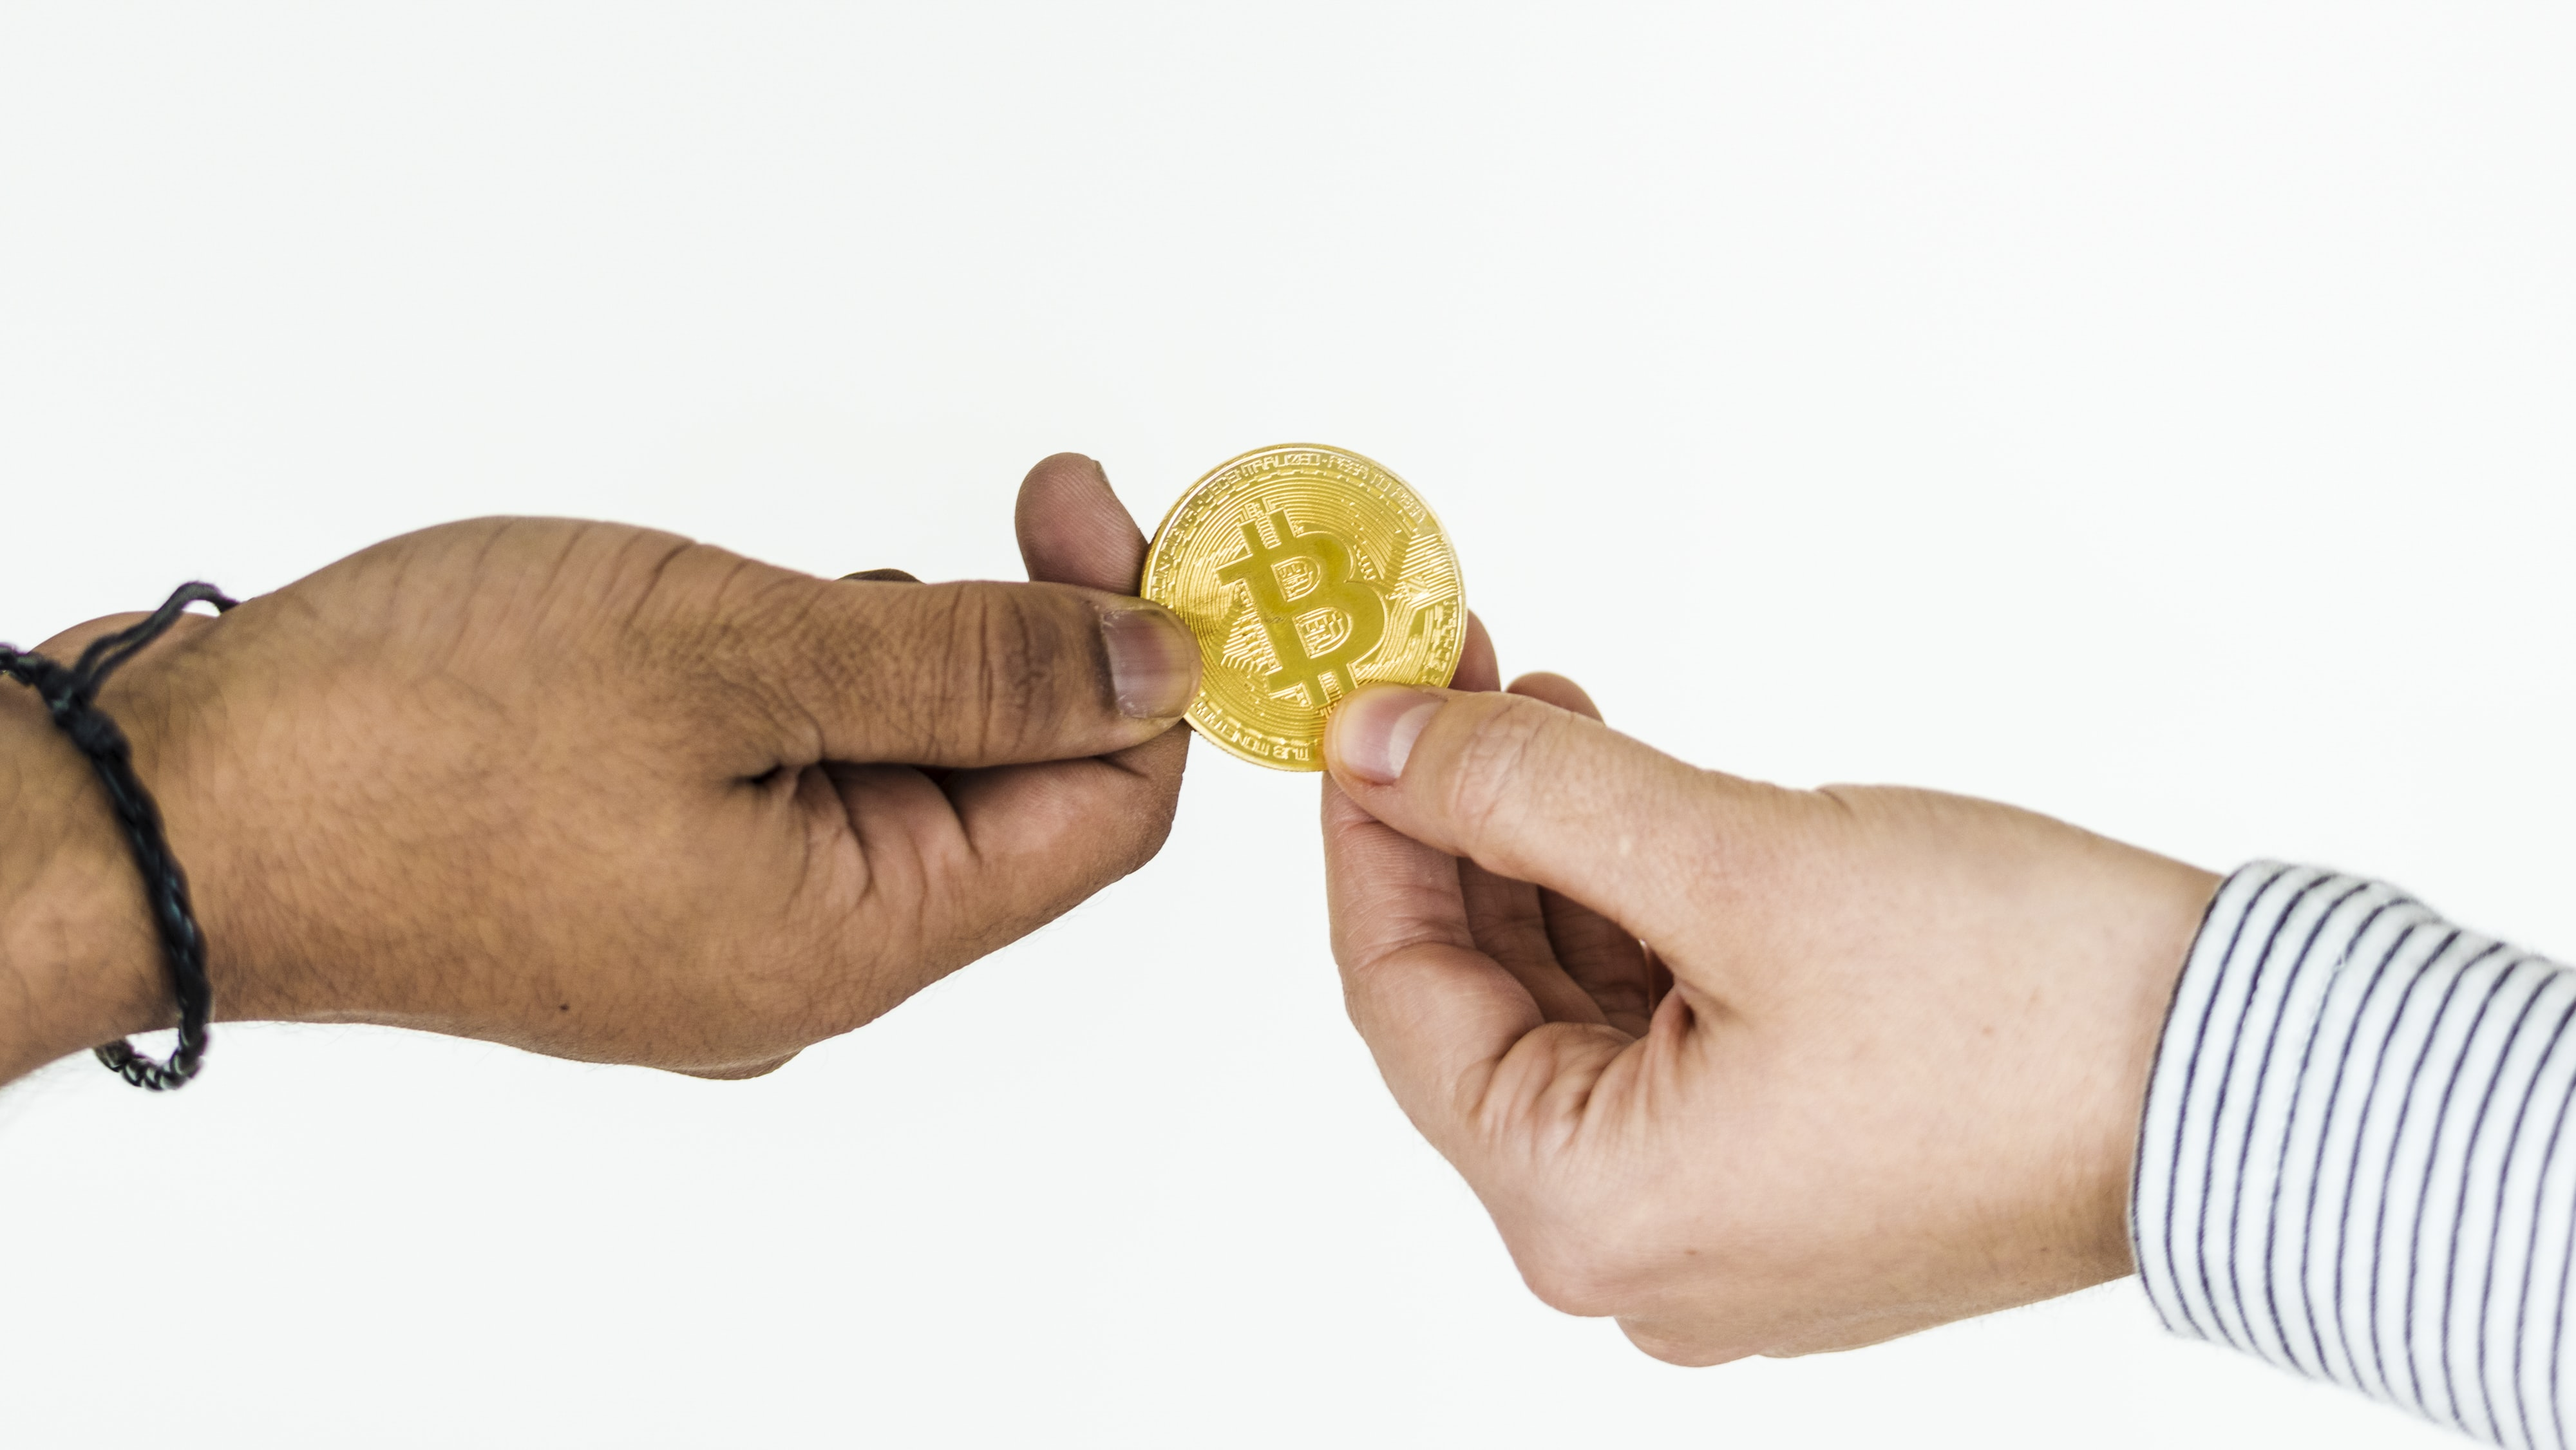 two persons holding gold-colored Bitcoin